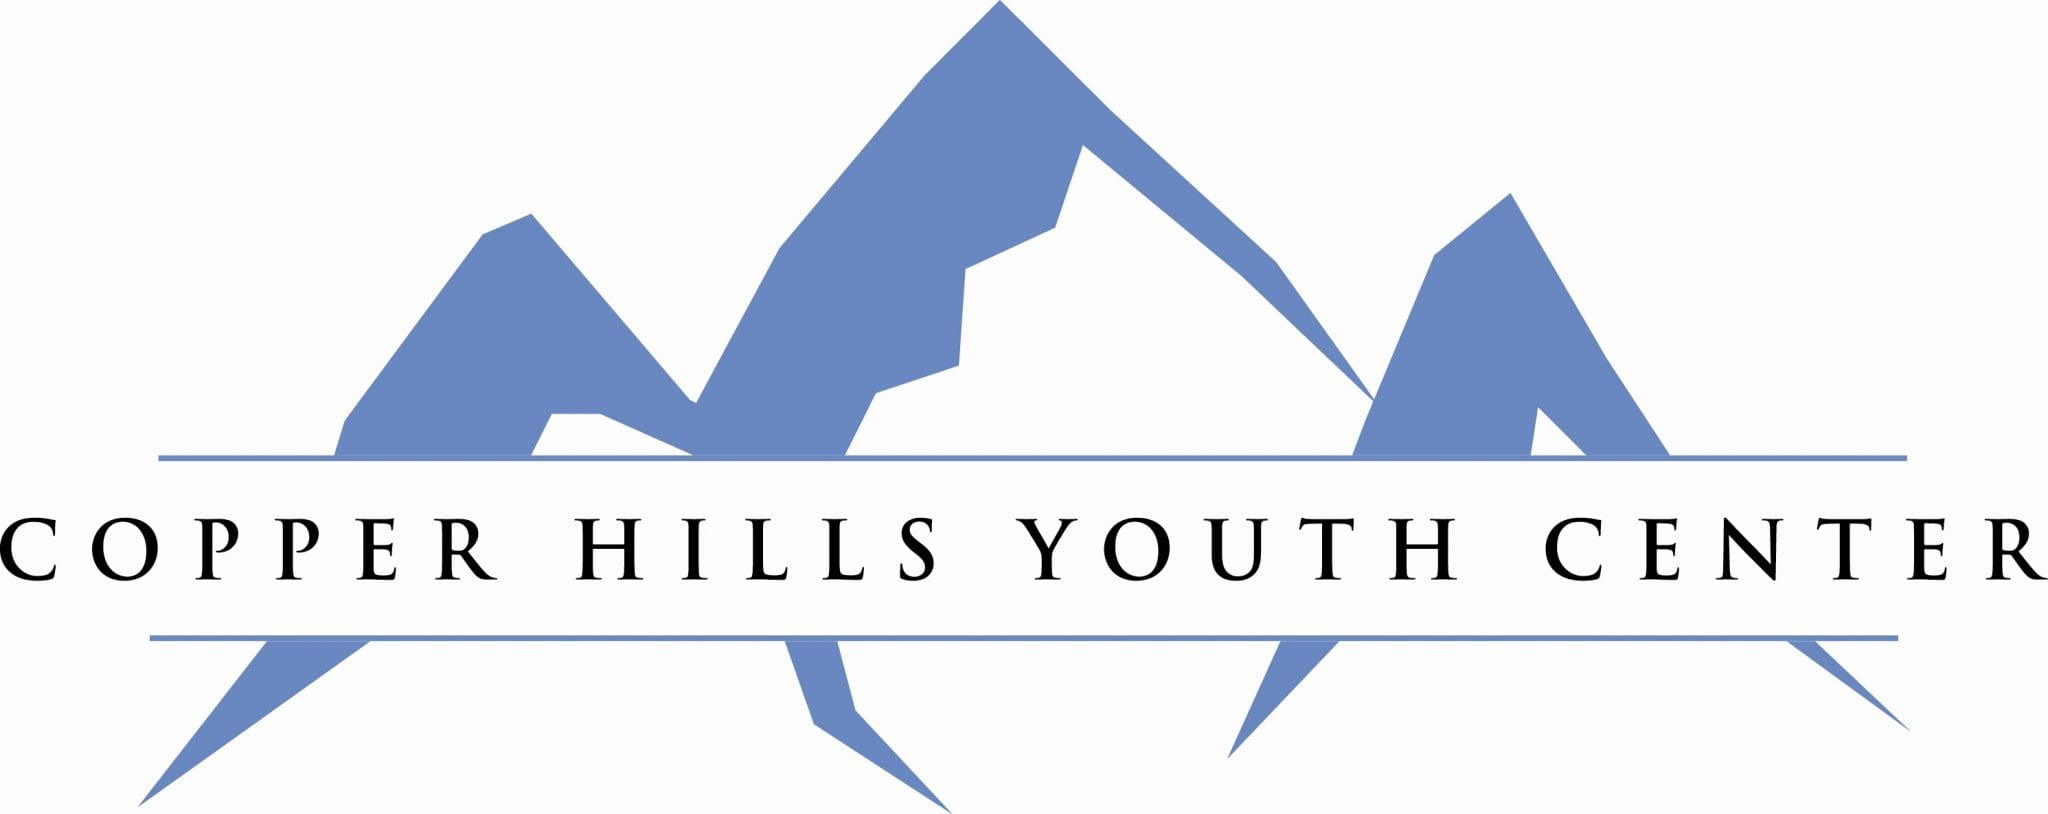 Copper Hills Youth Center